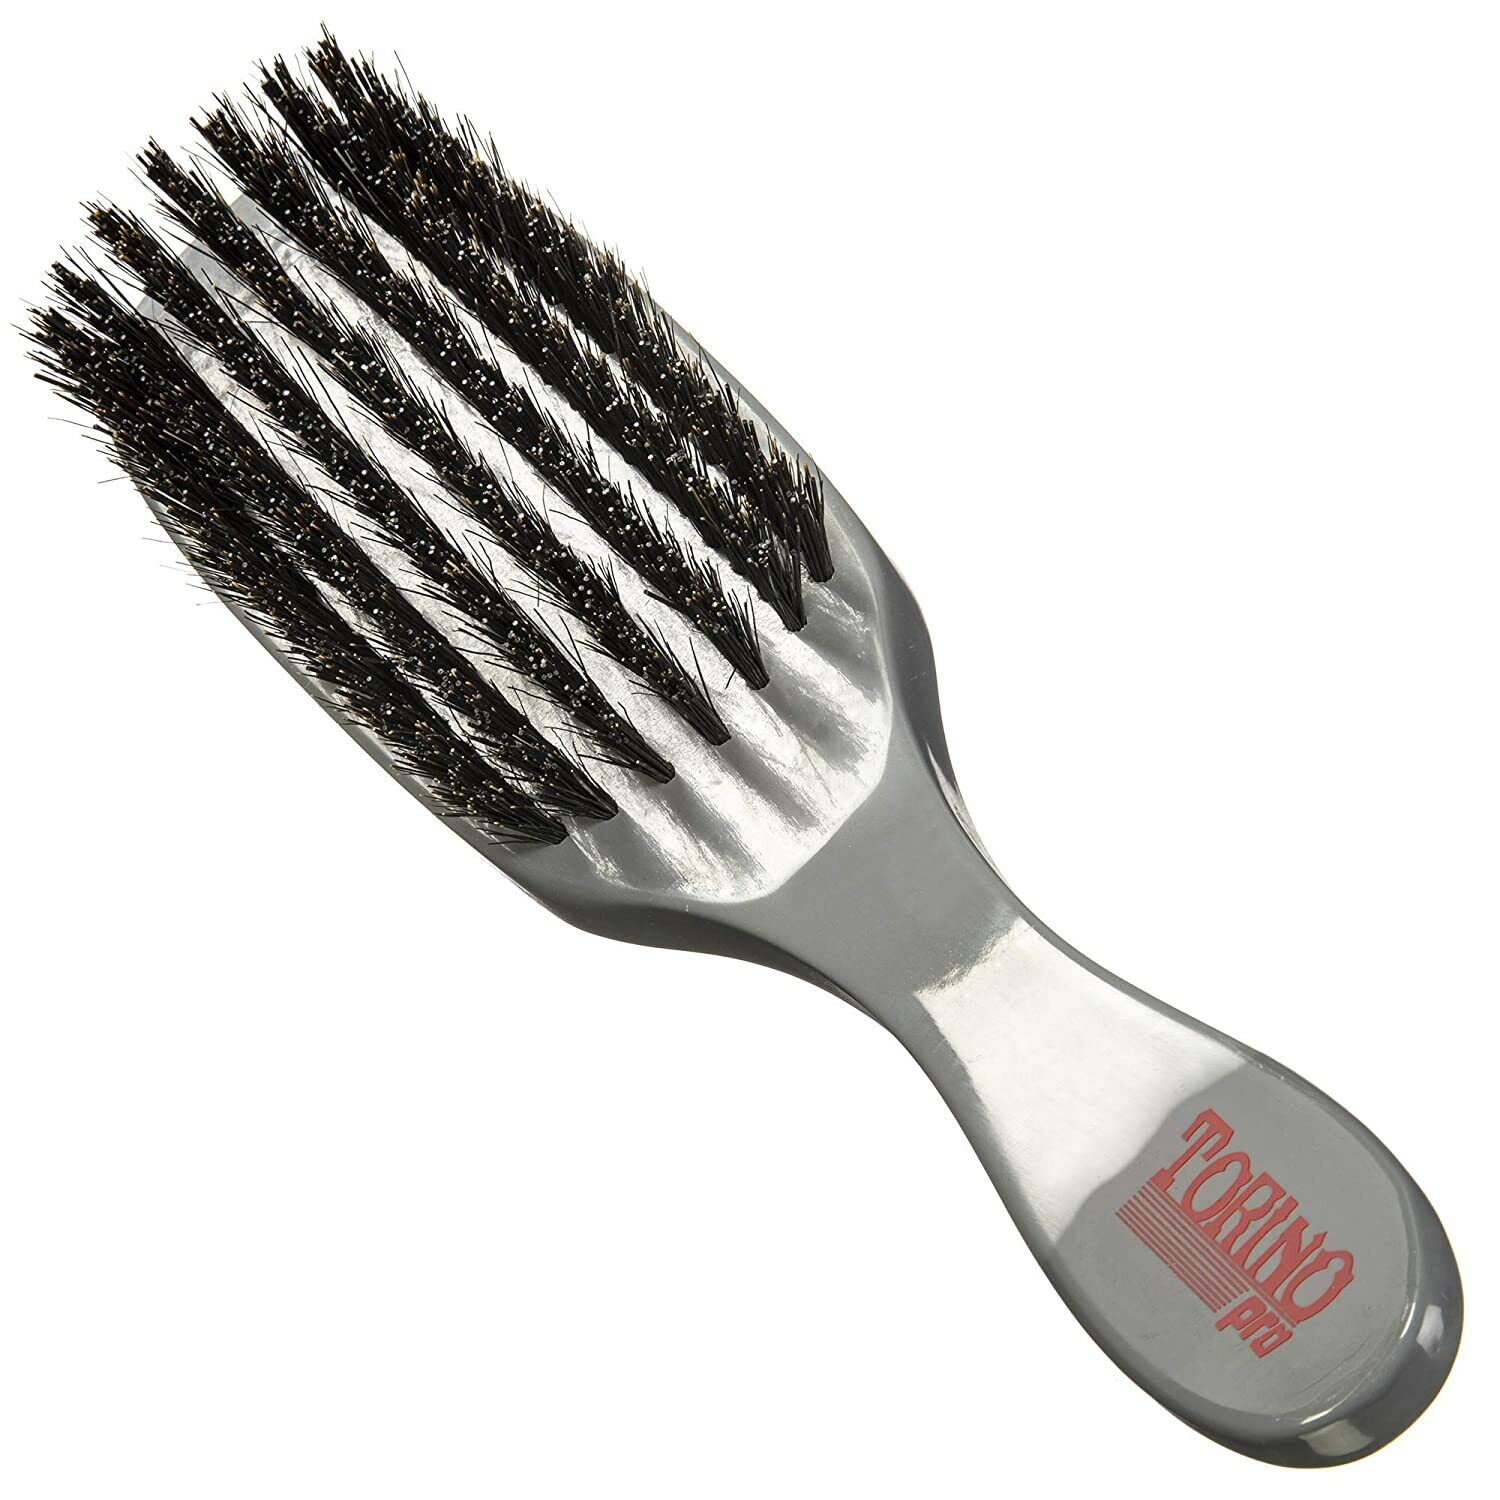 TORINO PRO Wave Brush 960 by Brush King 7 Row Medium Hard 36